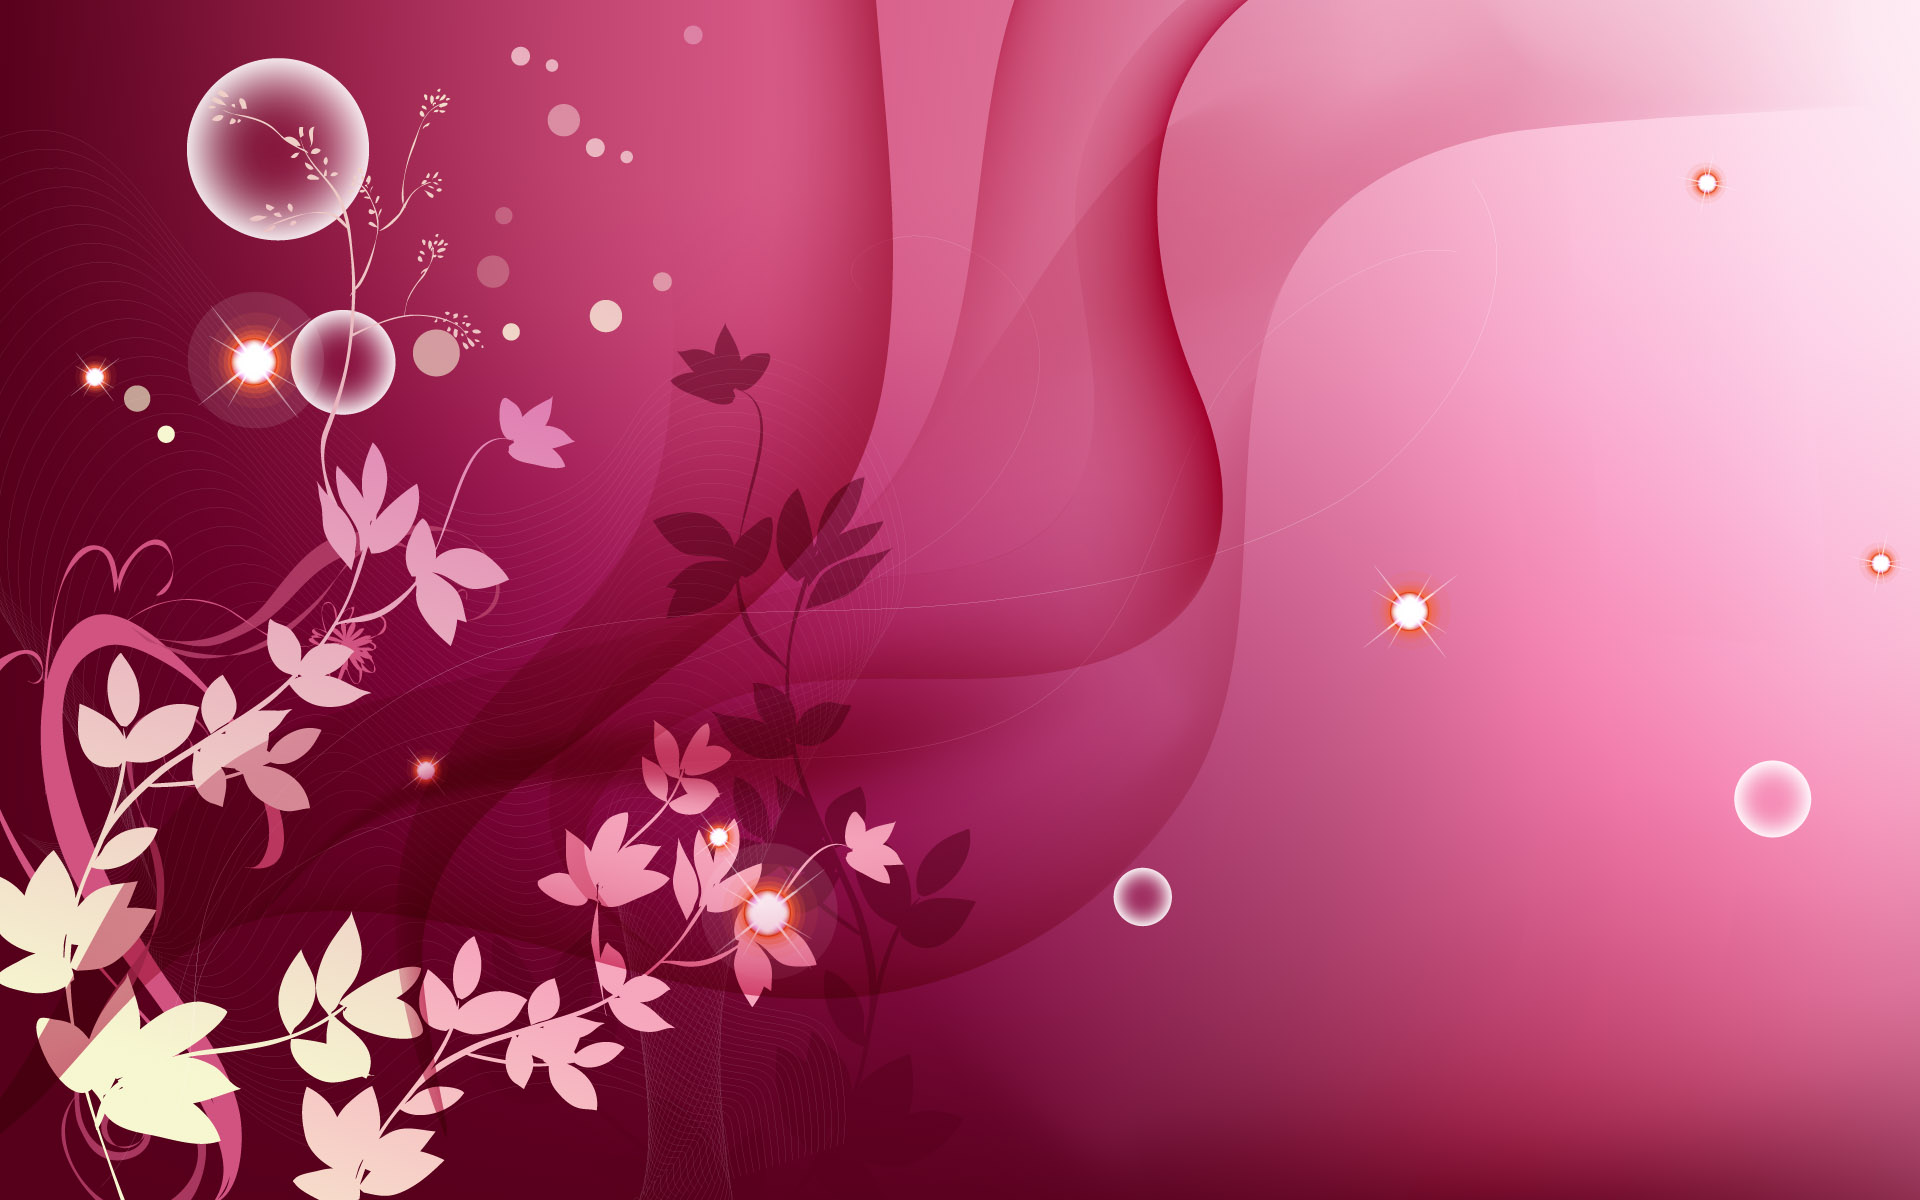 Abstract Flowers Design Hd Photo Of 256269 Wallpaper